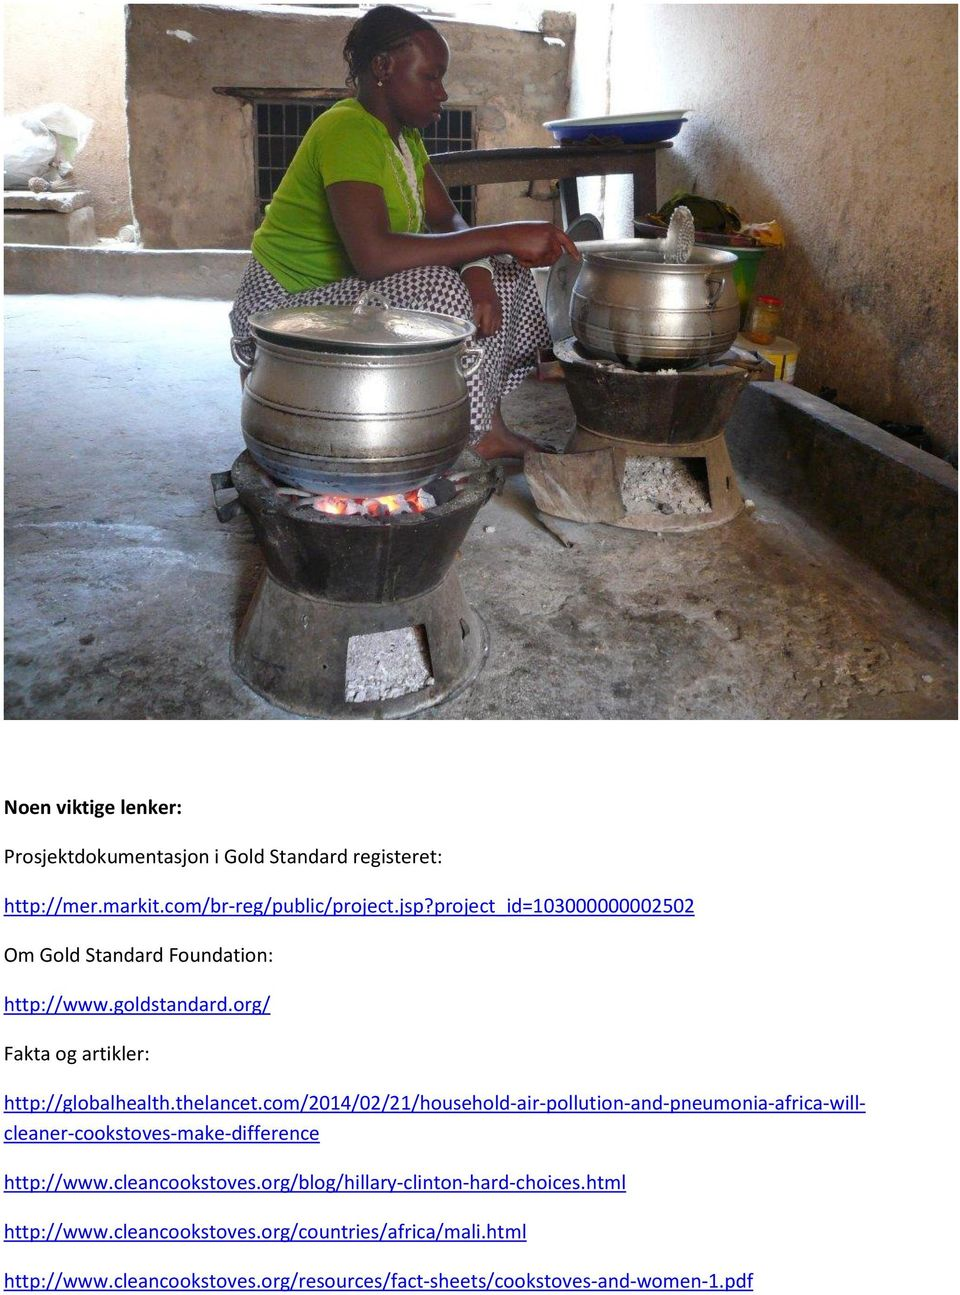 com/2014/02/21/household-air-pollution-and-pneumonia-africa-willcleaner-cookstoves-make-difference http://www.cleancookstoves.